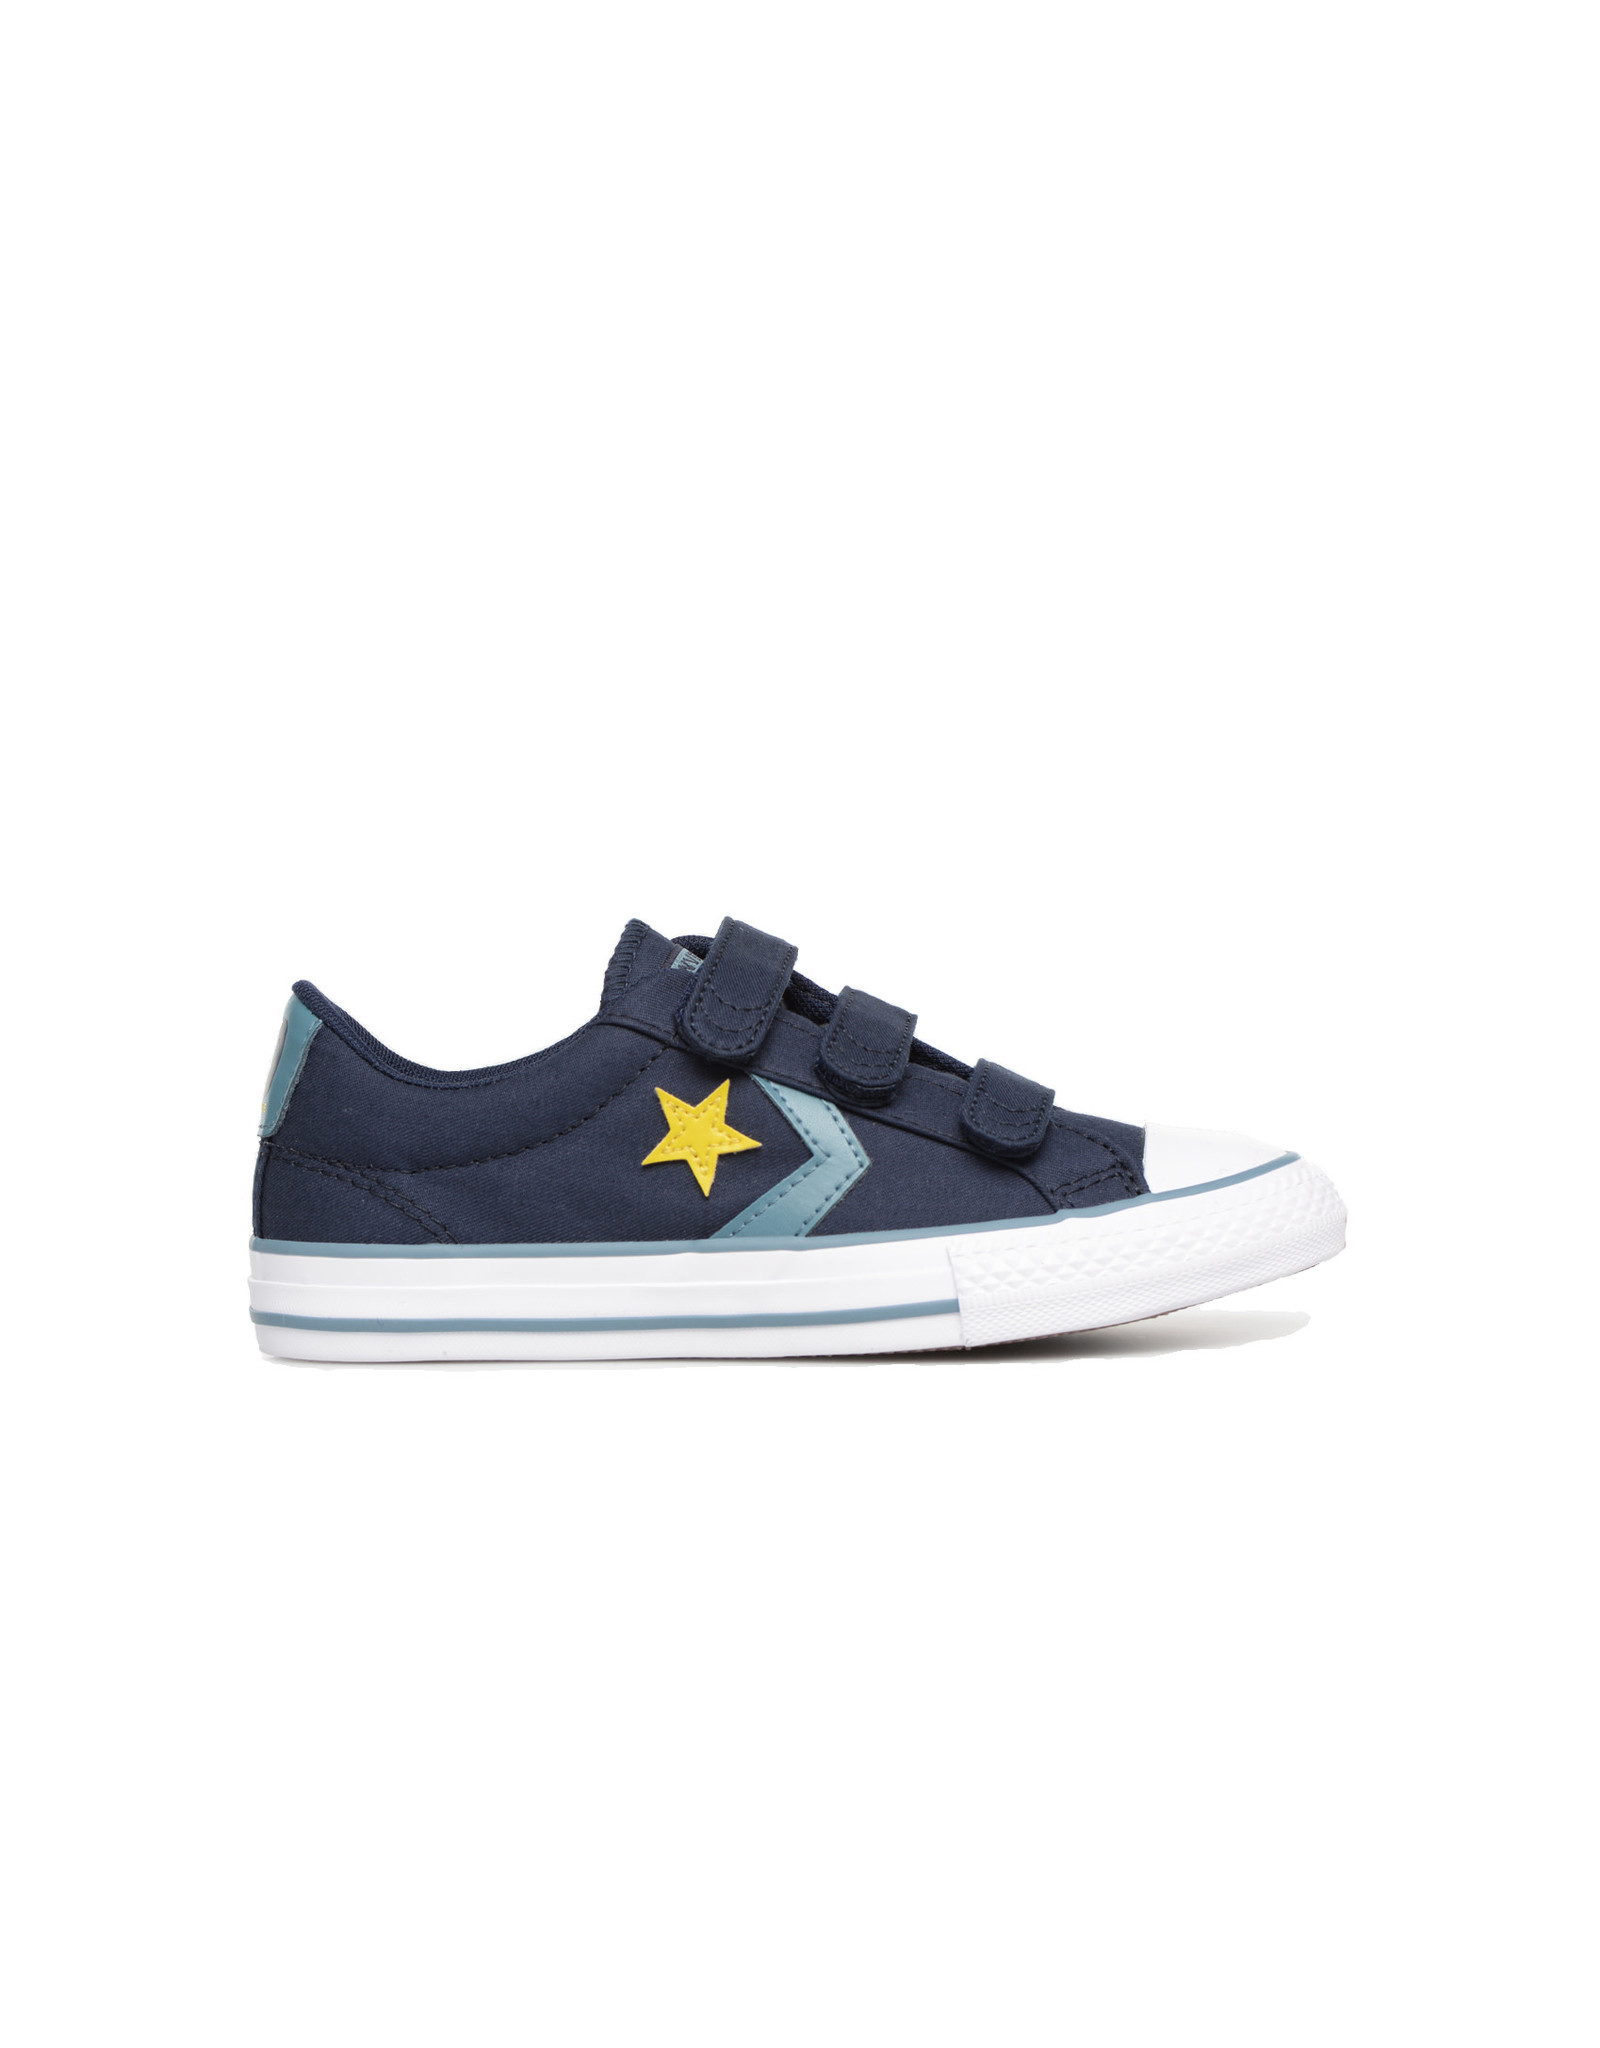 CONVERSE STAR PLAYER 3V OX OBSIDIAN CZ86OB-663600C